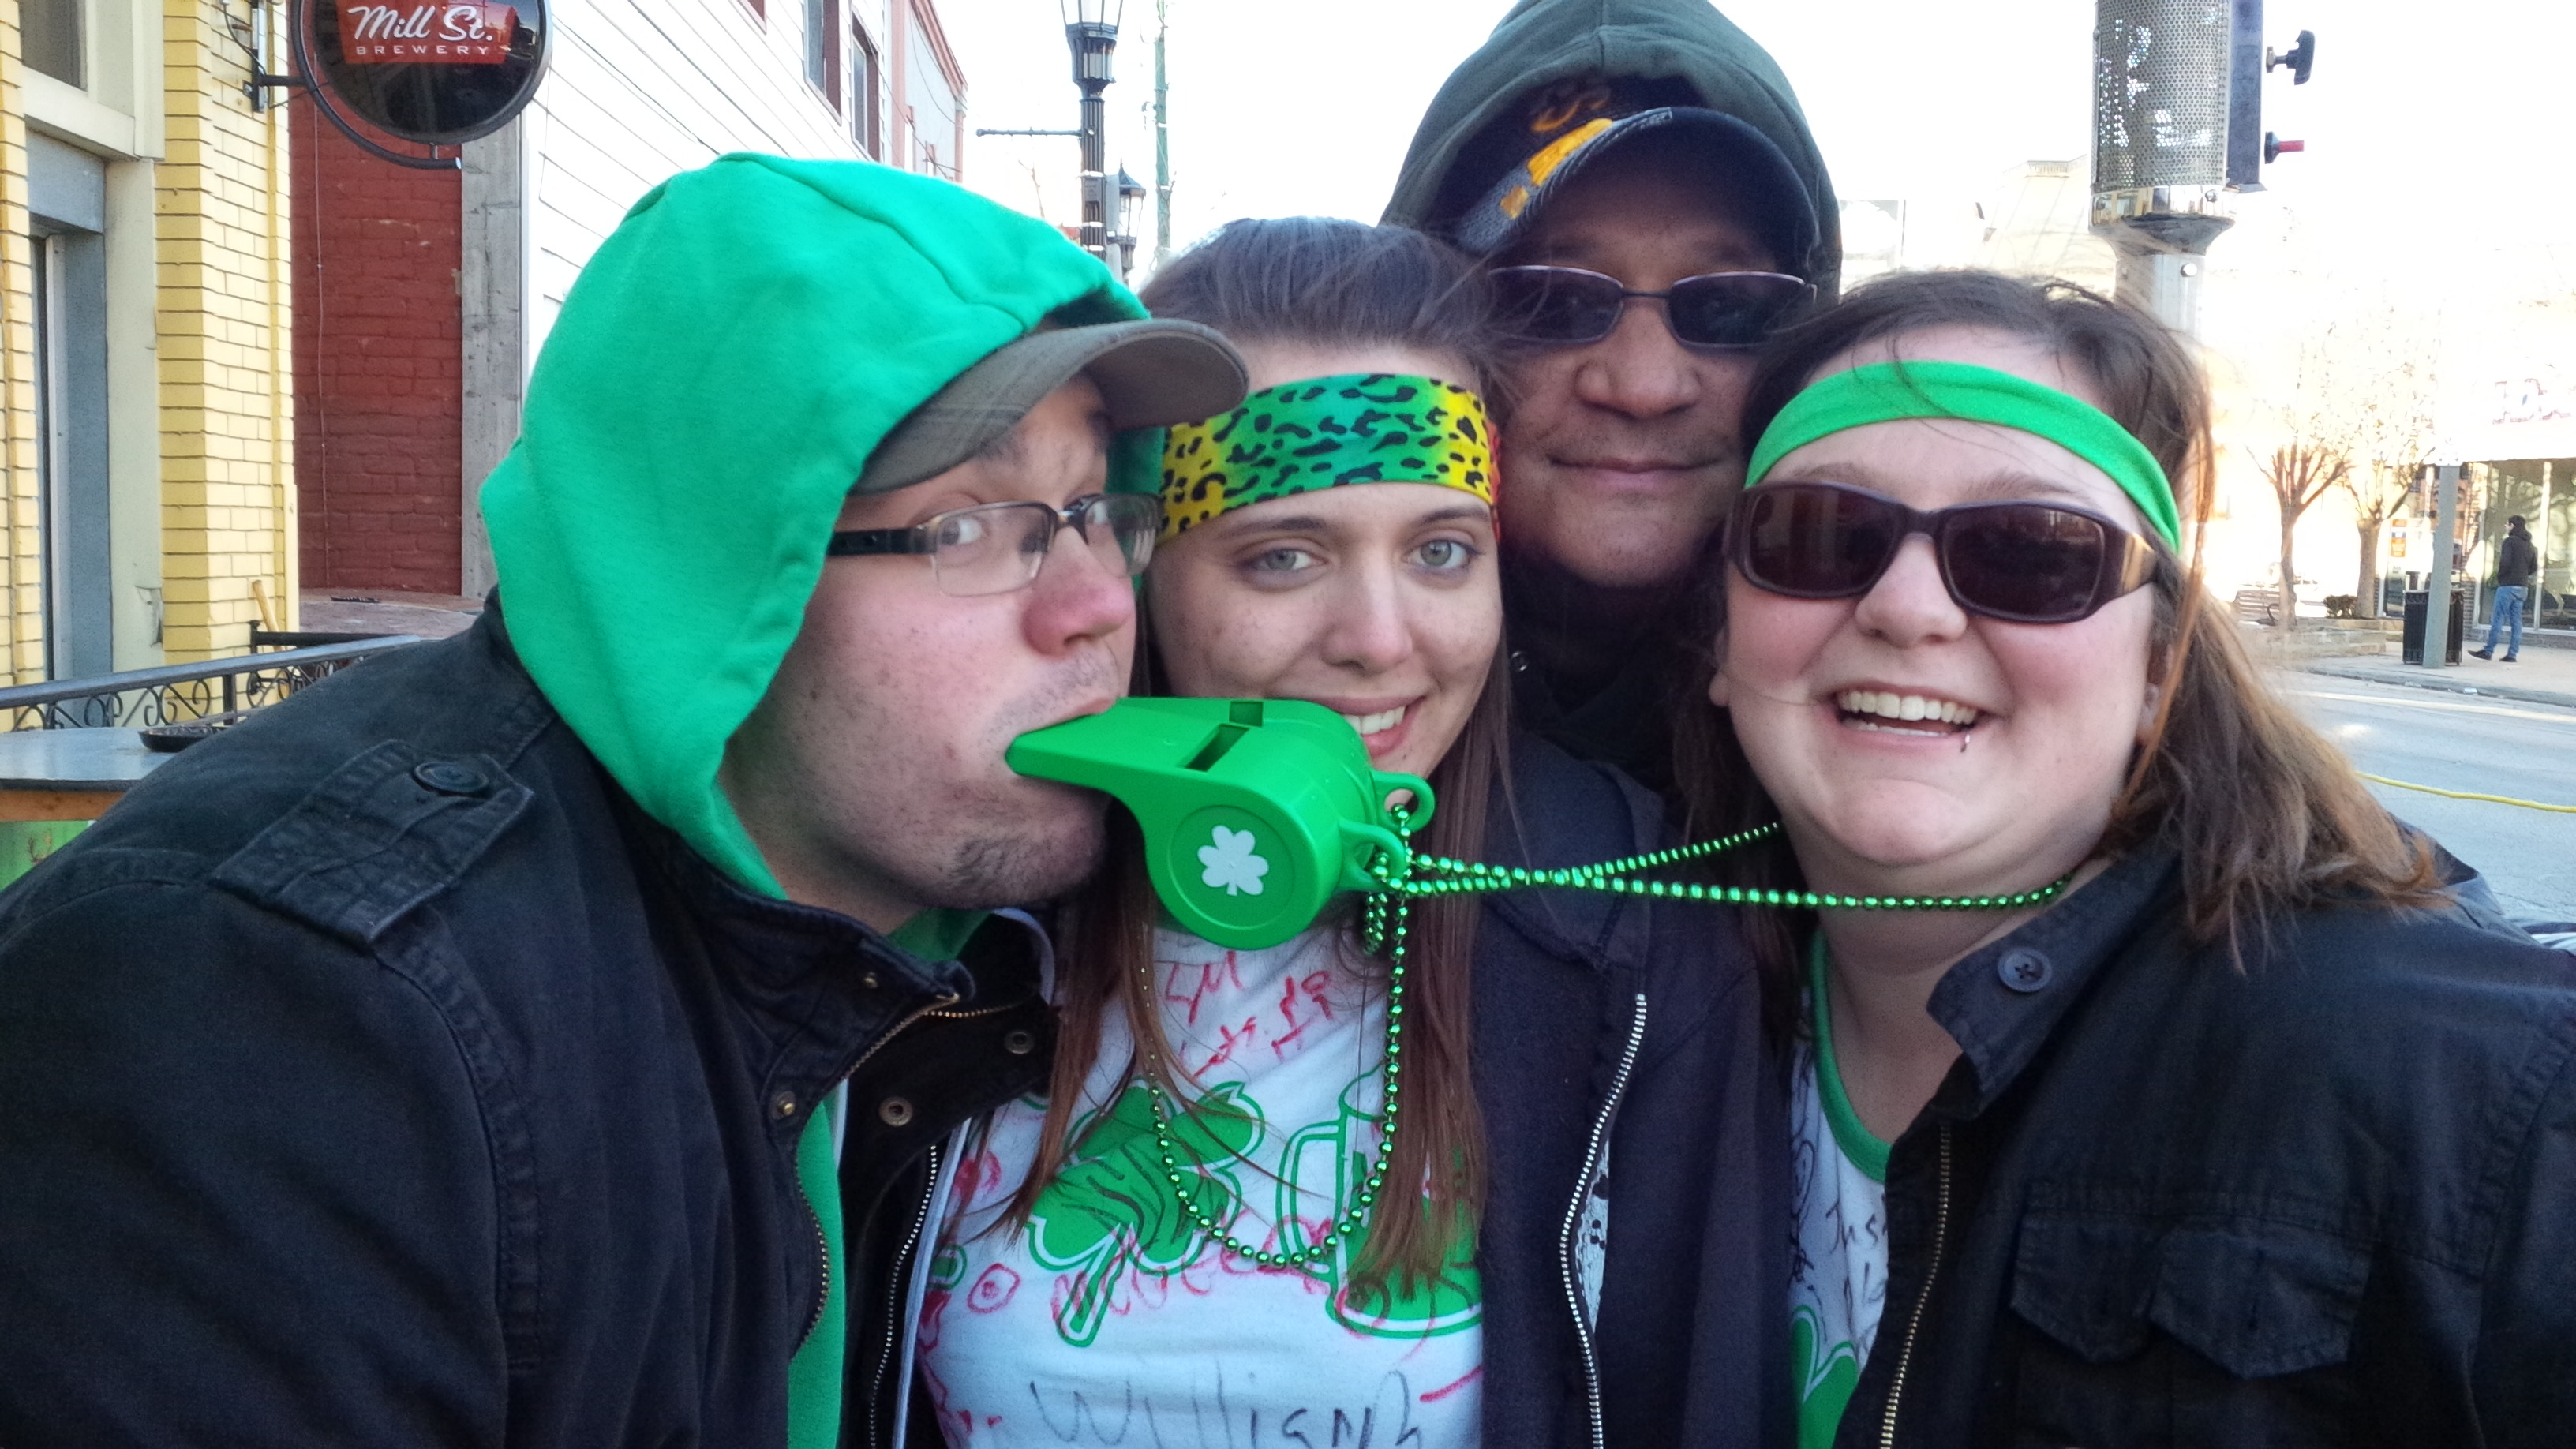 Partiers celebrate St. Patrick's Day. (BlackburnNews.com file photo)